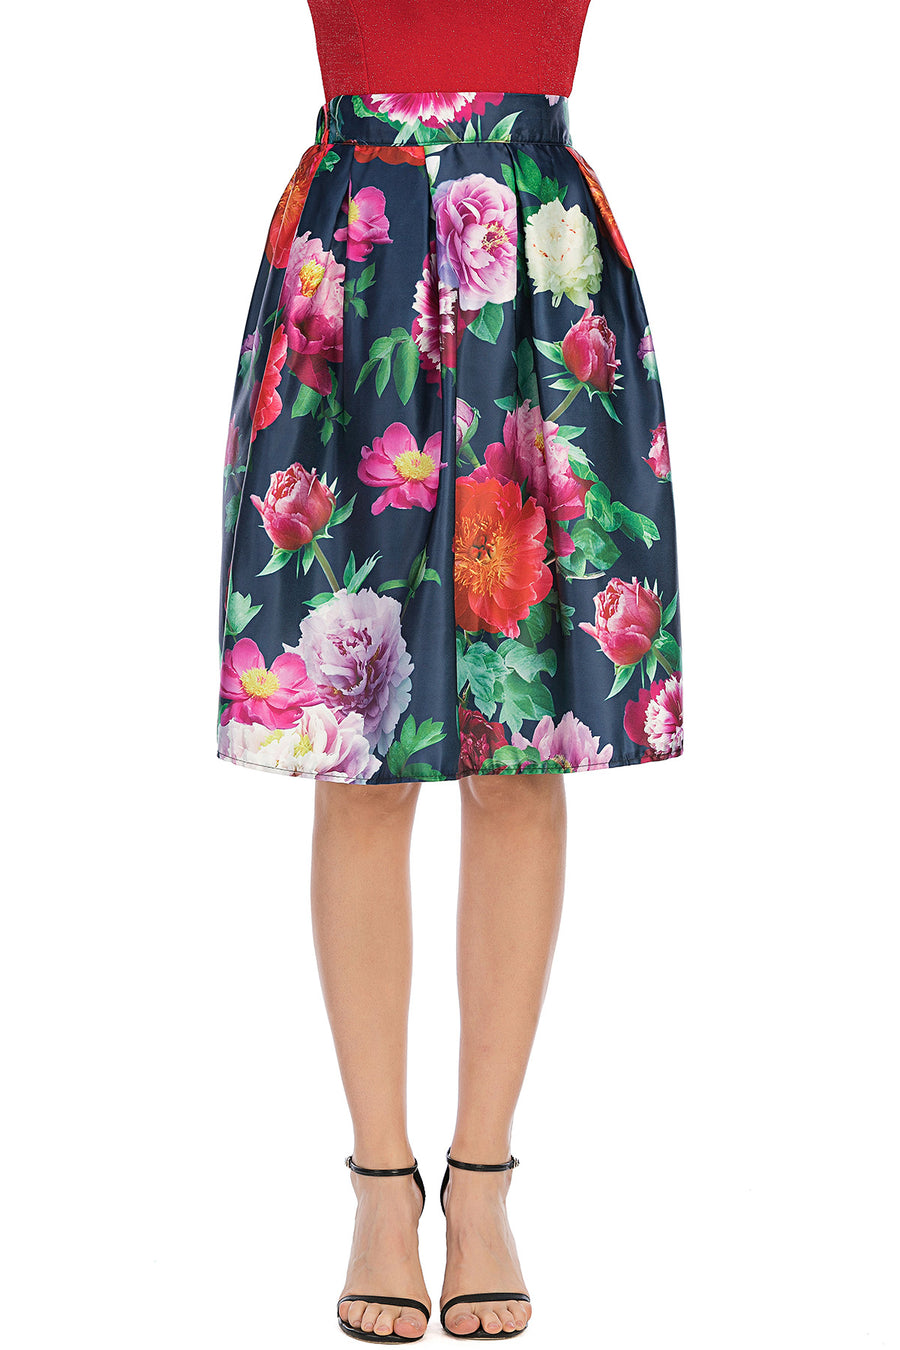 Mantra Pakistan Floral print skirt | Western Wear